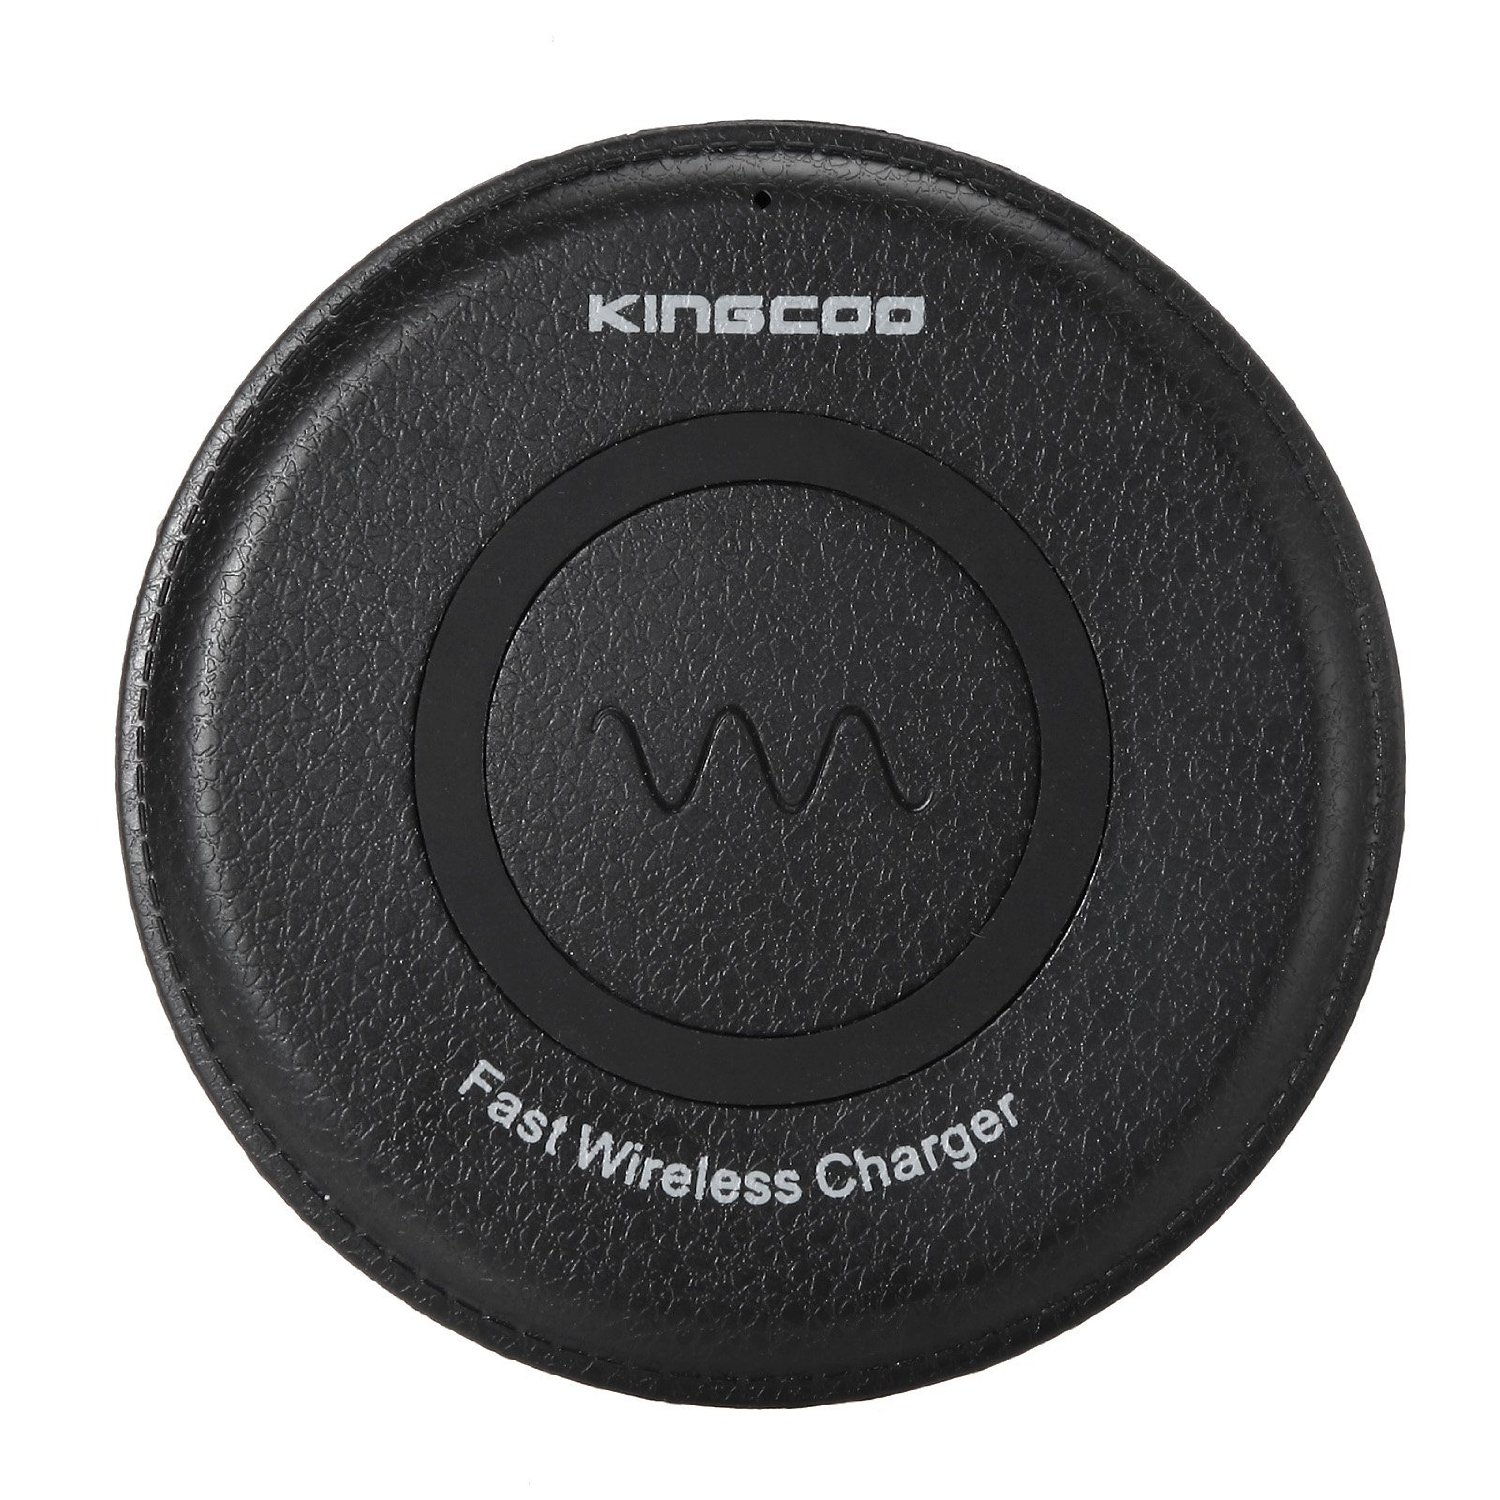 Fast Wireless Charger, KINGCOO® Fast Charge QI Fast wireless Charging Pad for Samsung Galaxy S7 S7 Edge, Note 5, S6 Edge Plus Compatible with all Standard Qi-enabled devices